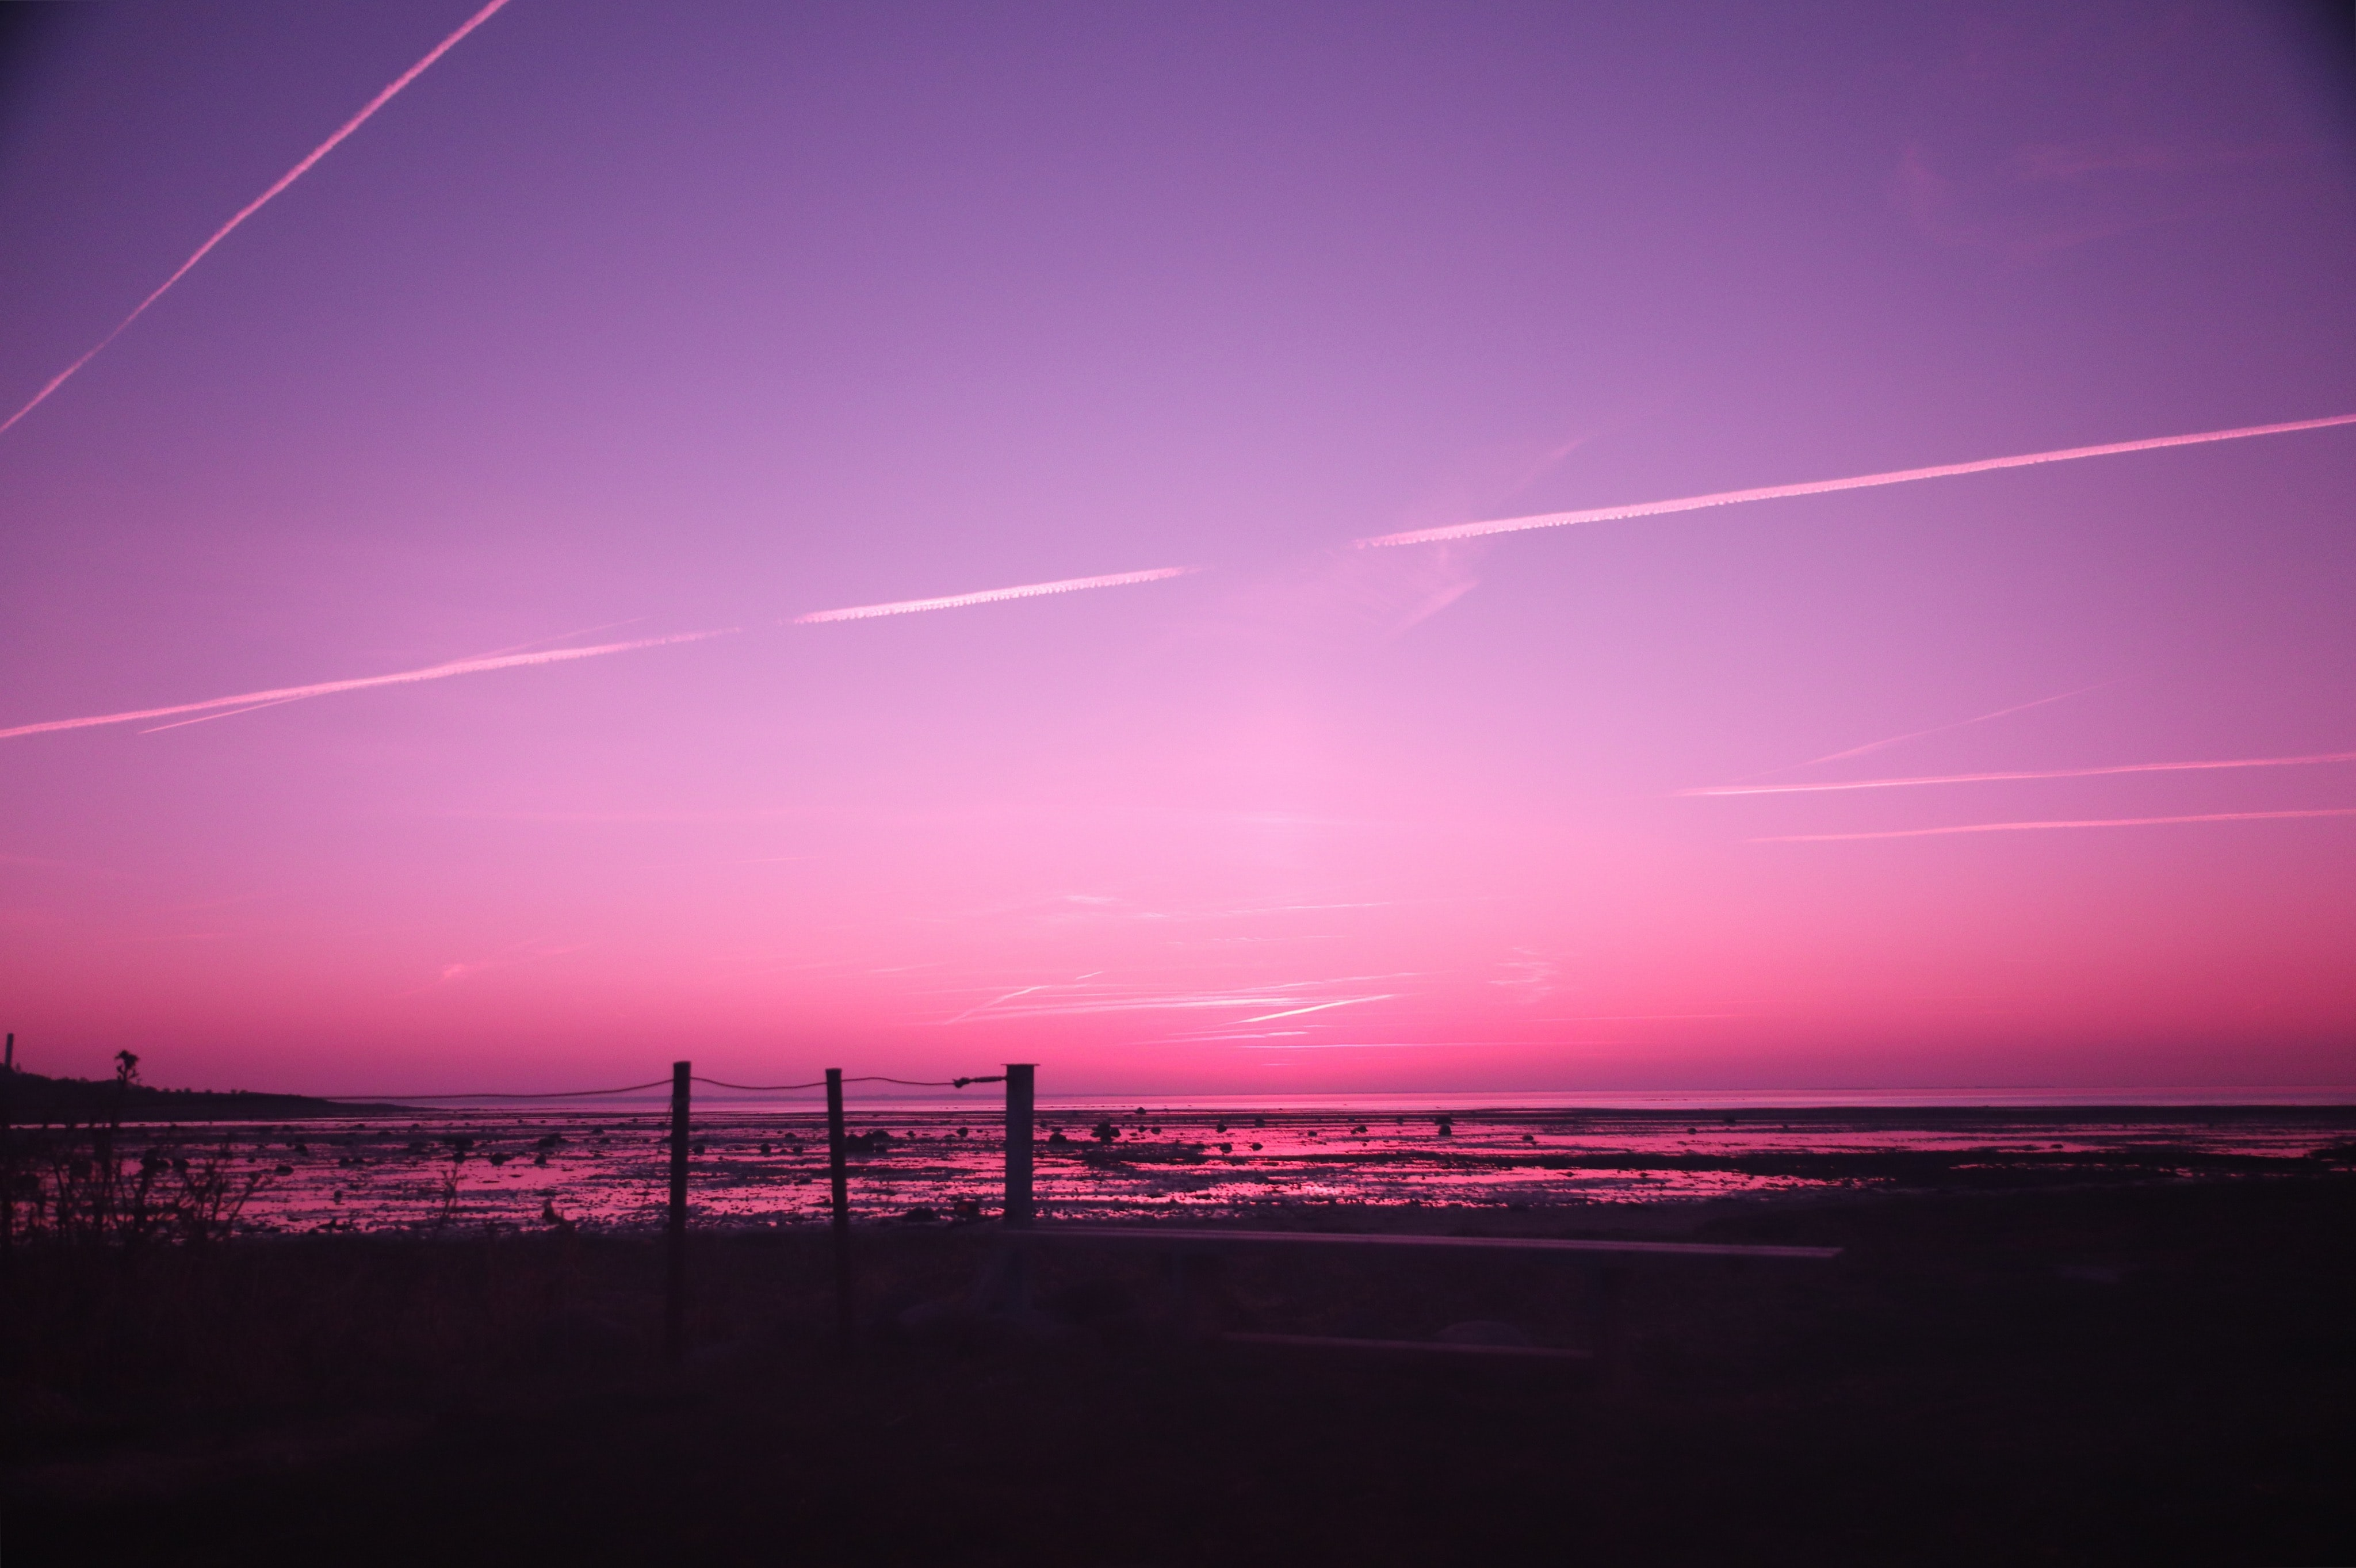 silhouette photography of seashore under clear sky